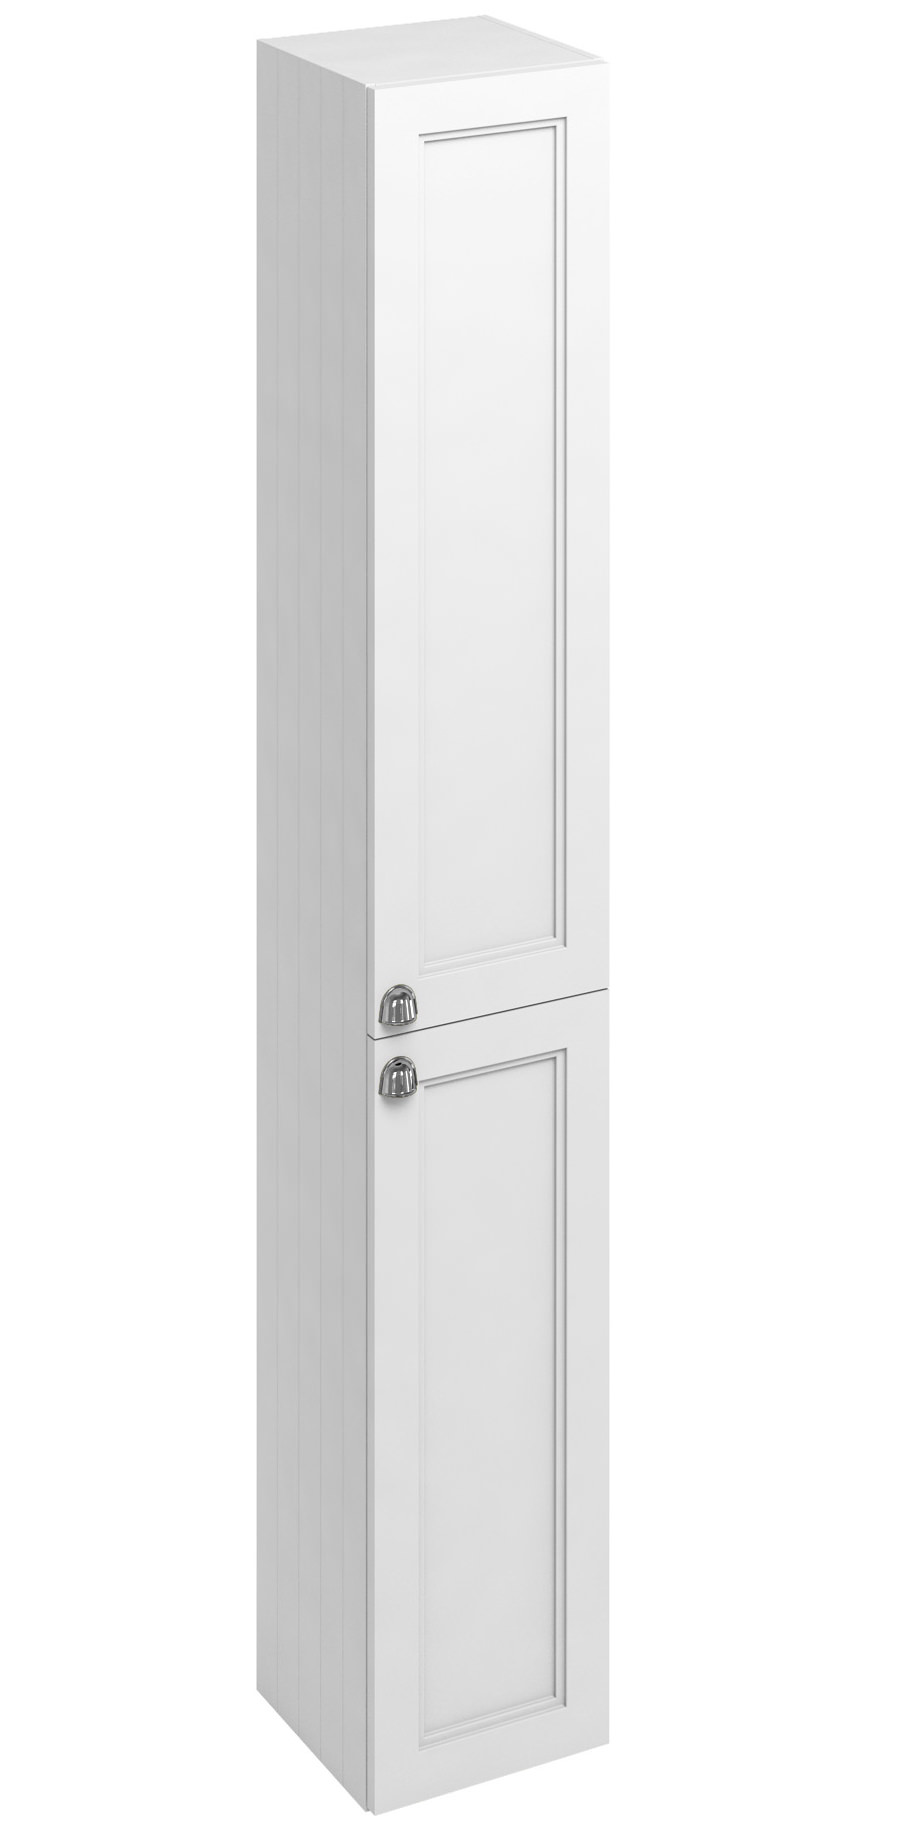 Burlington 300mm double door tall base unit for 300mm tall kitchen unit